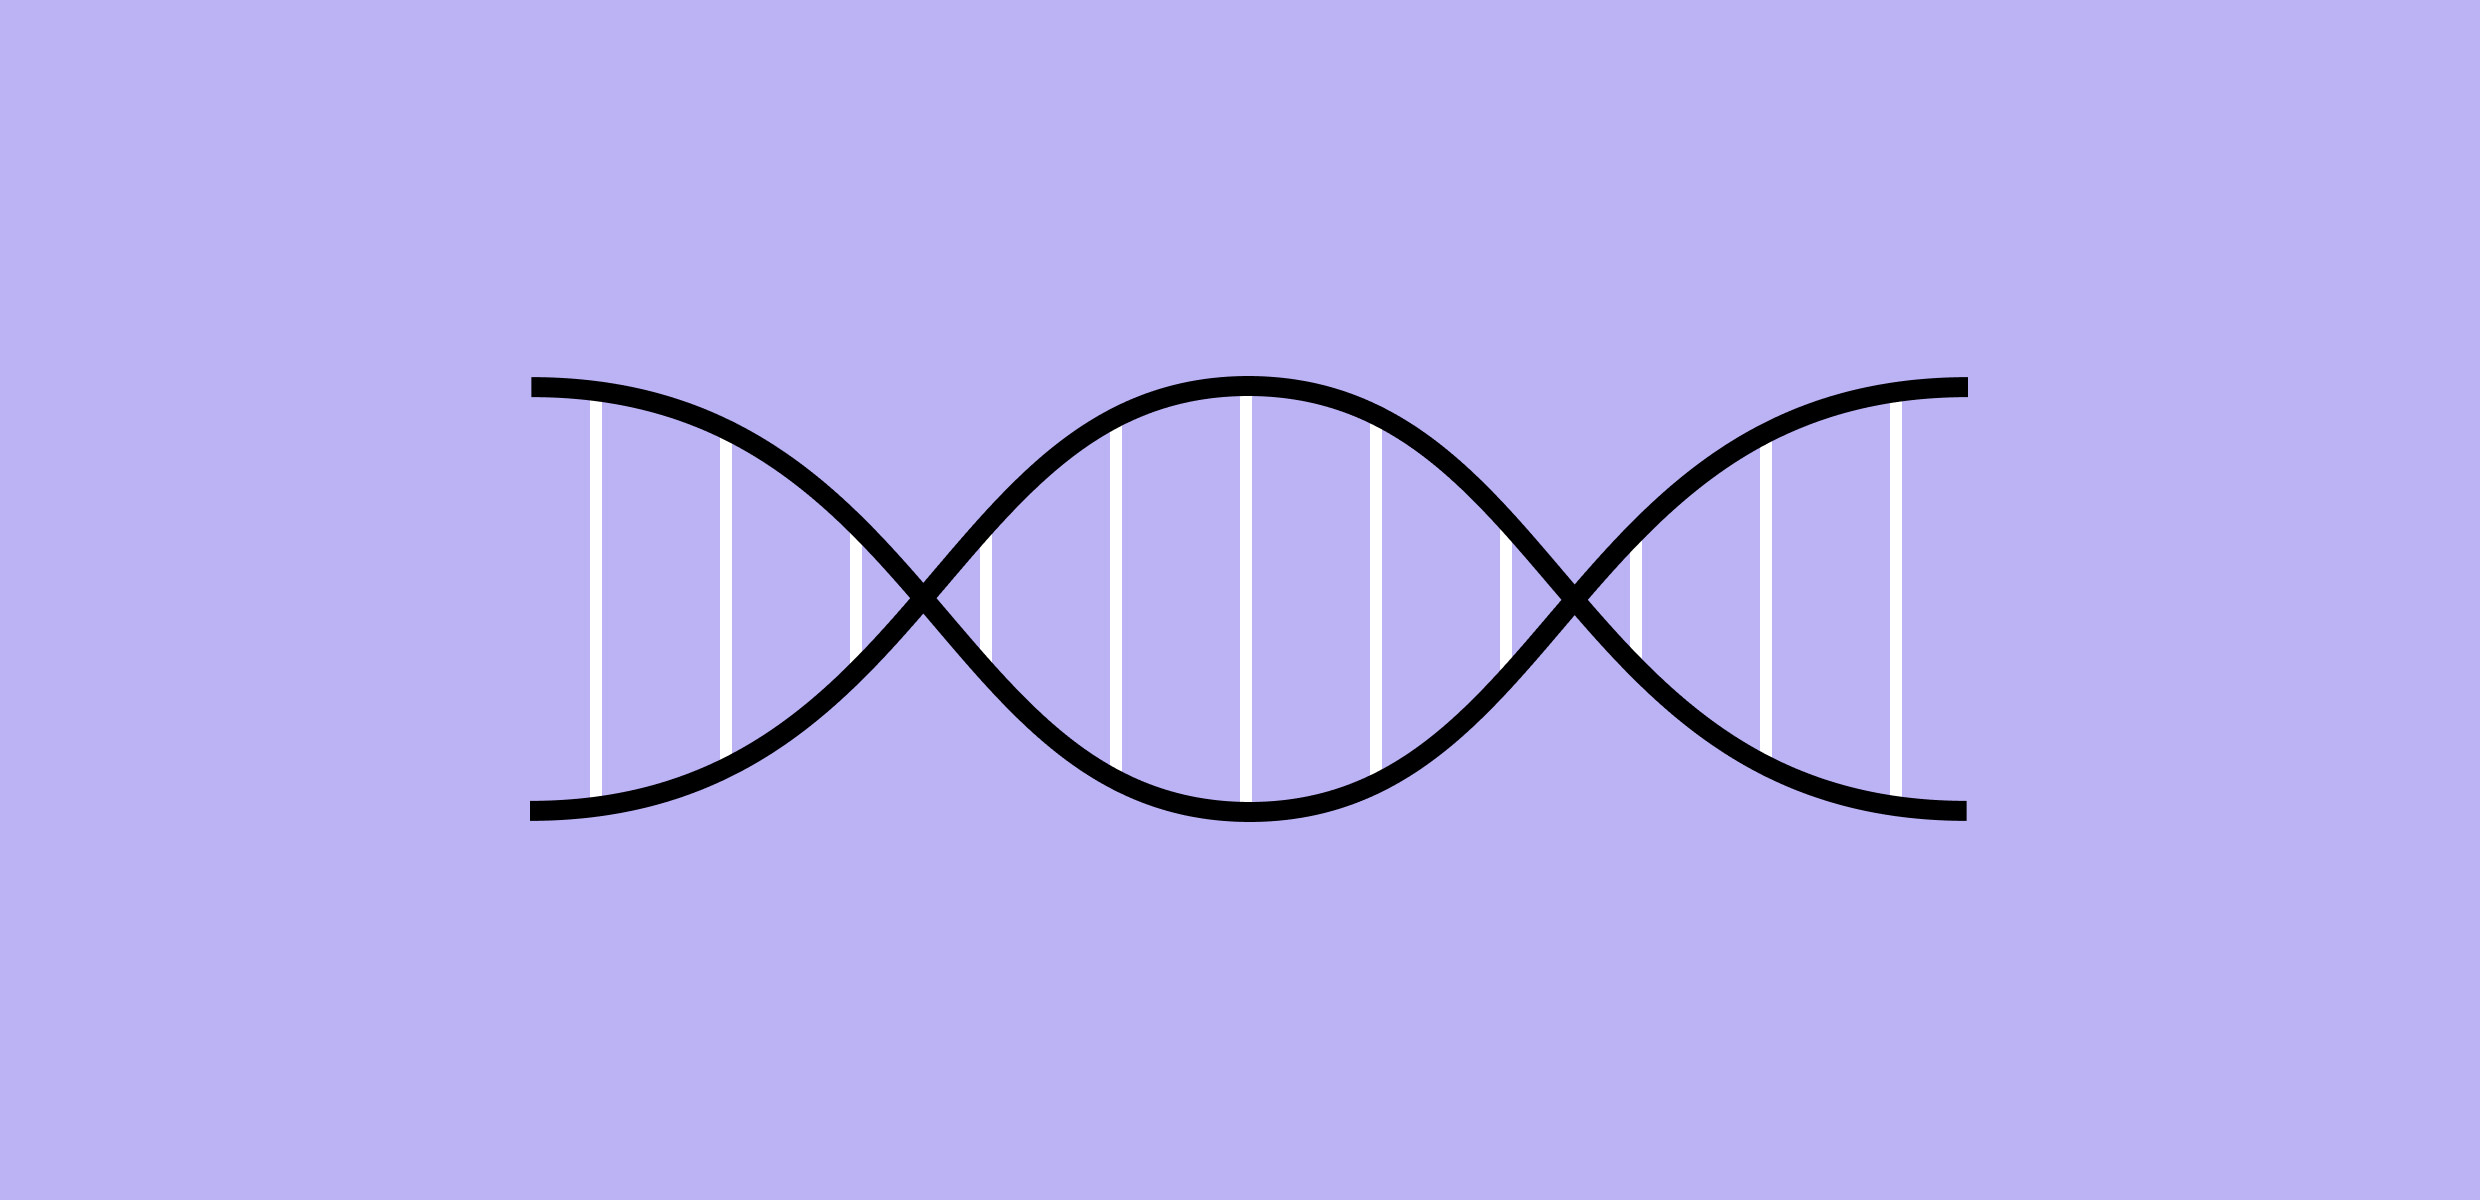 How to Create a Double Helix in Adobe After Effects.